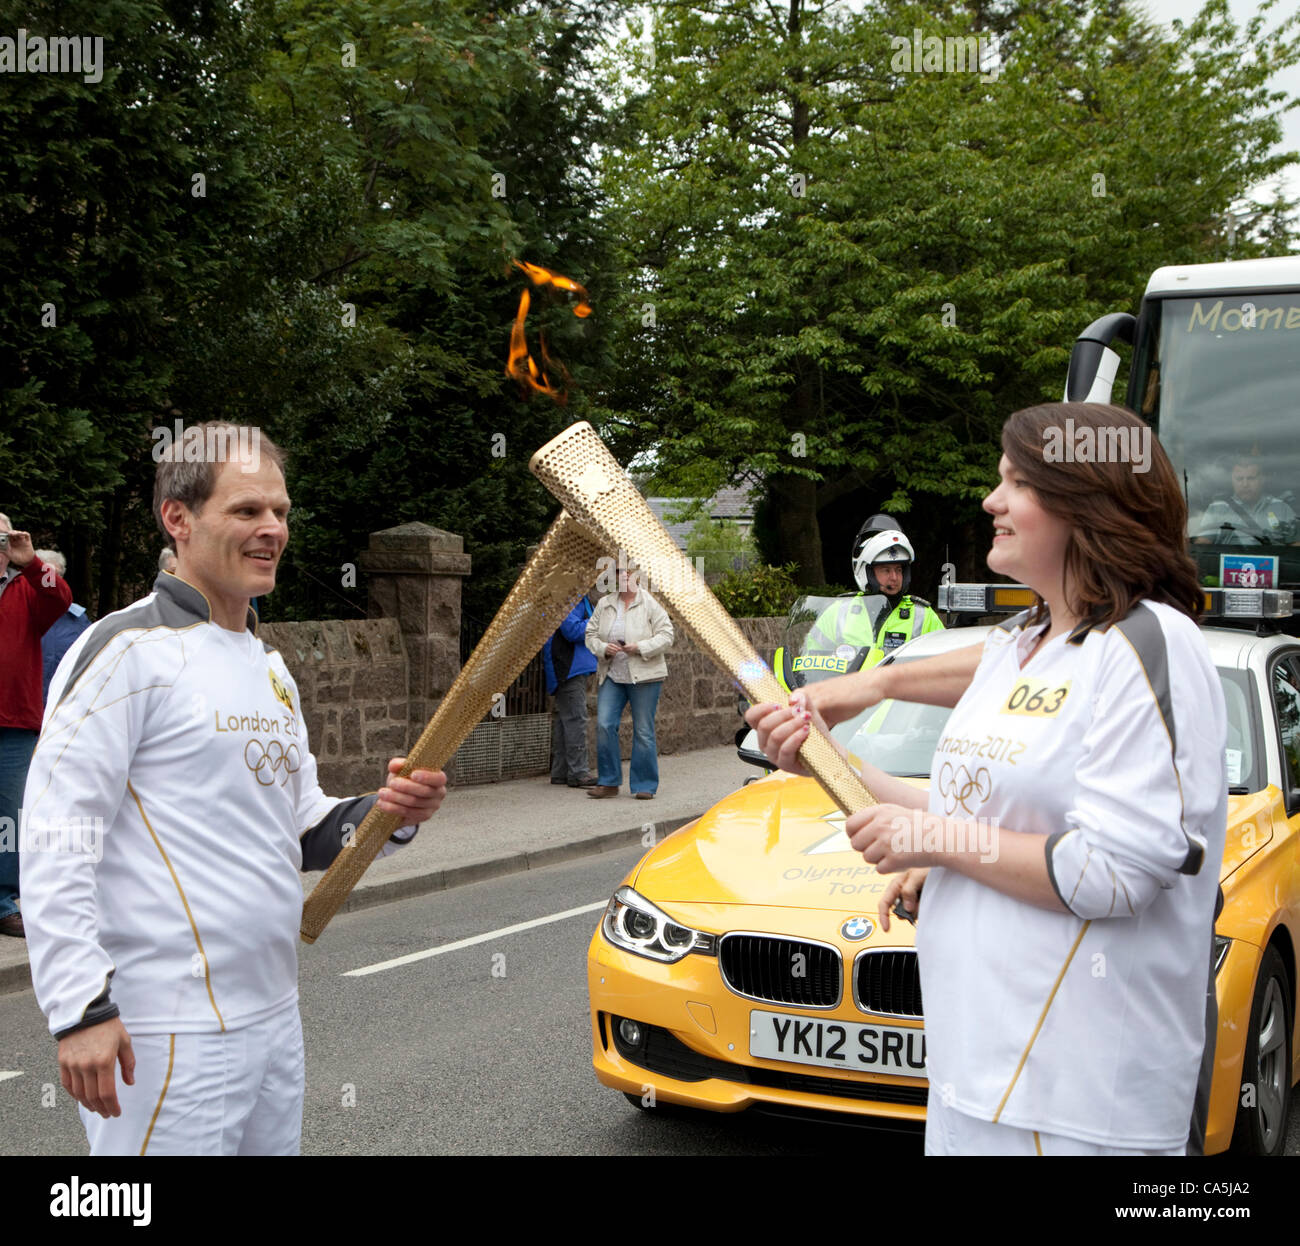 Aboyne, Scotland - June 11, 2012: Karl Kaufmann passing the Olympic flame to Amanda Yule during the 2012 Olympic - Stock Image